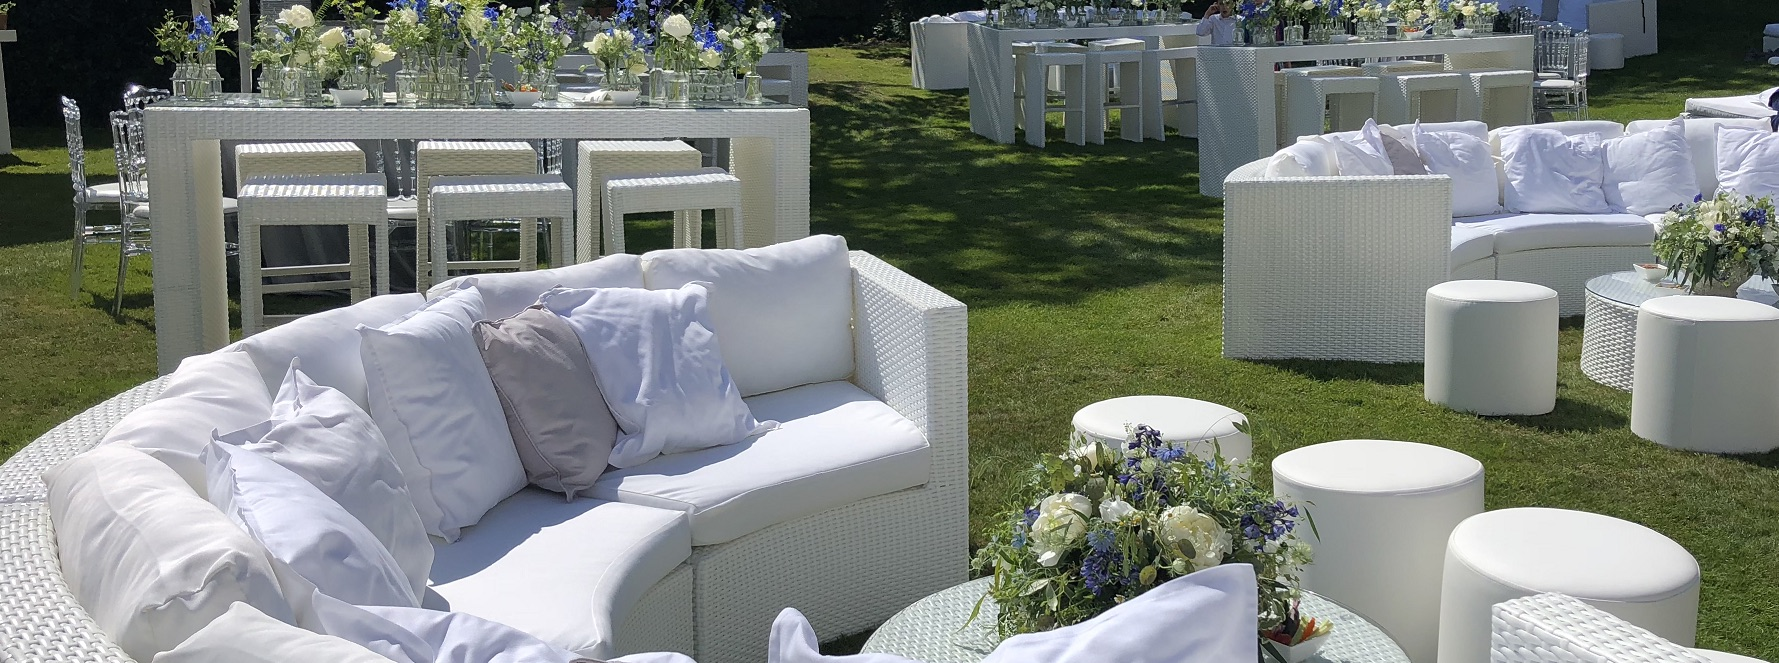 white-rattan-furniture-at-garden-party